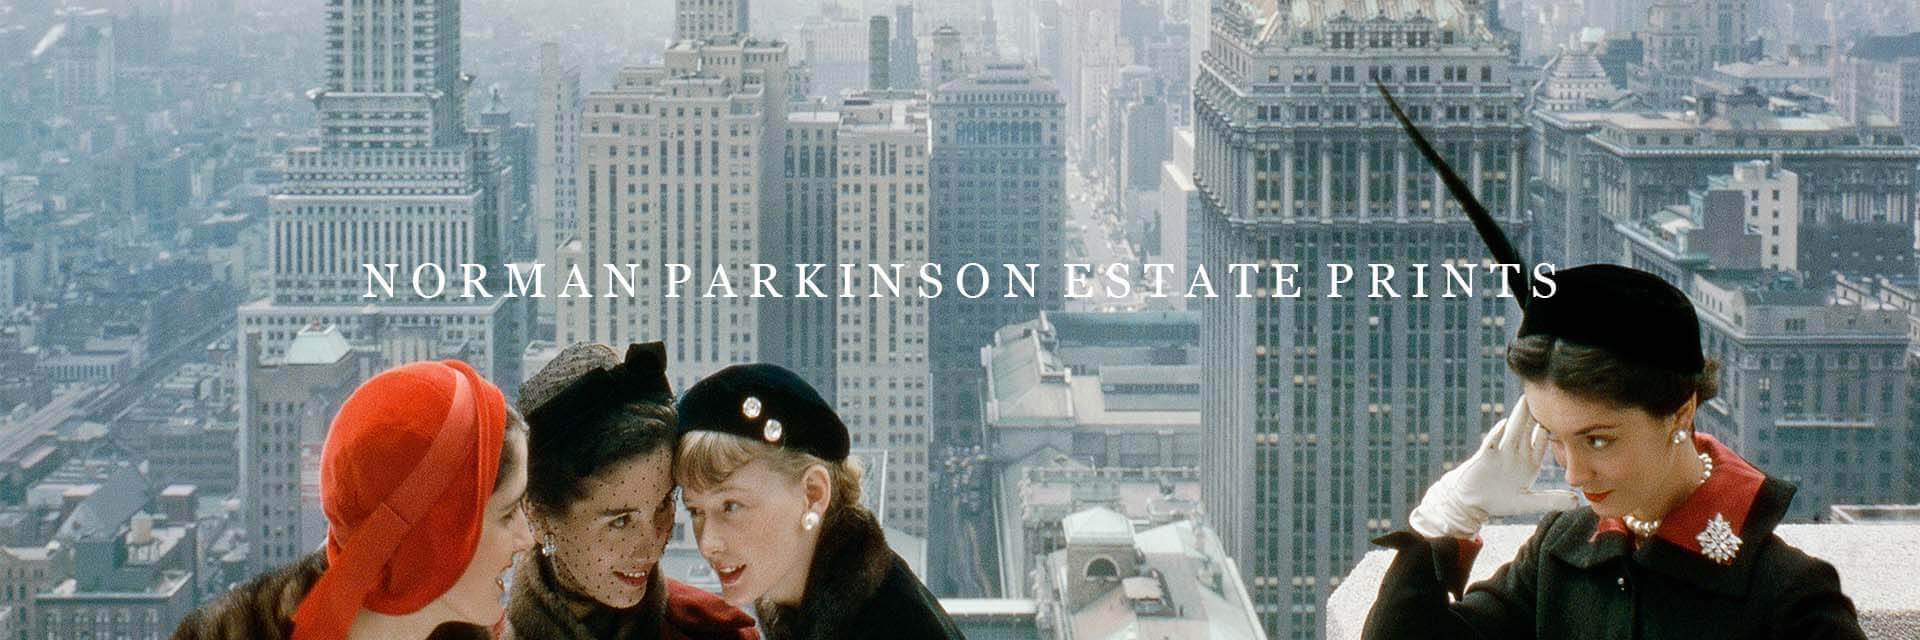 Stampe limitate di Norman Parkinson fashion phpotpgrapher